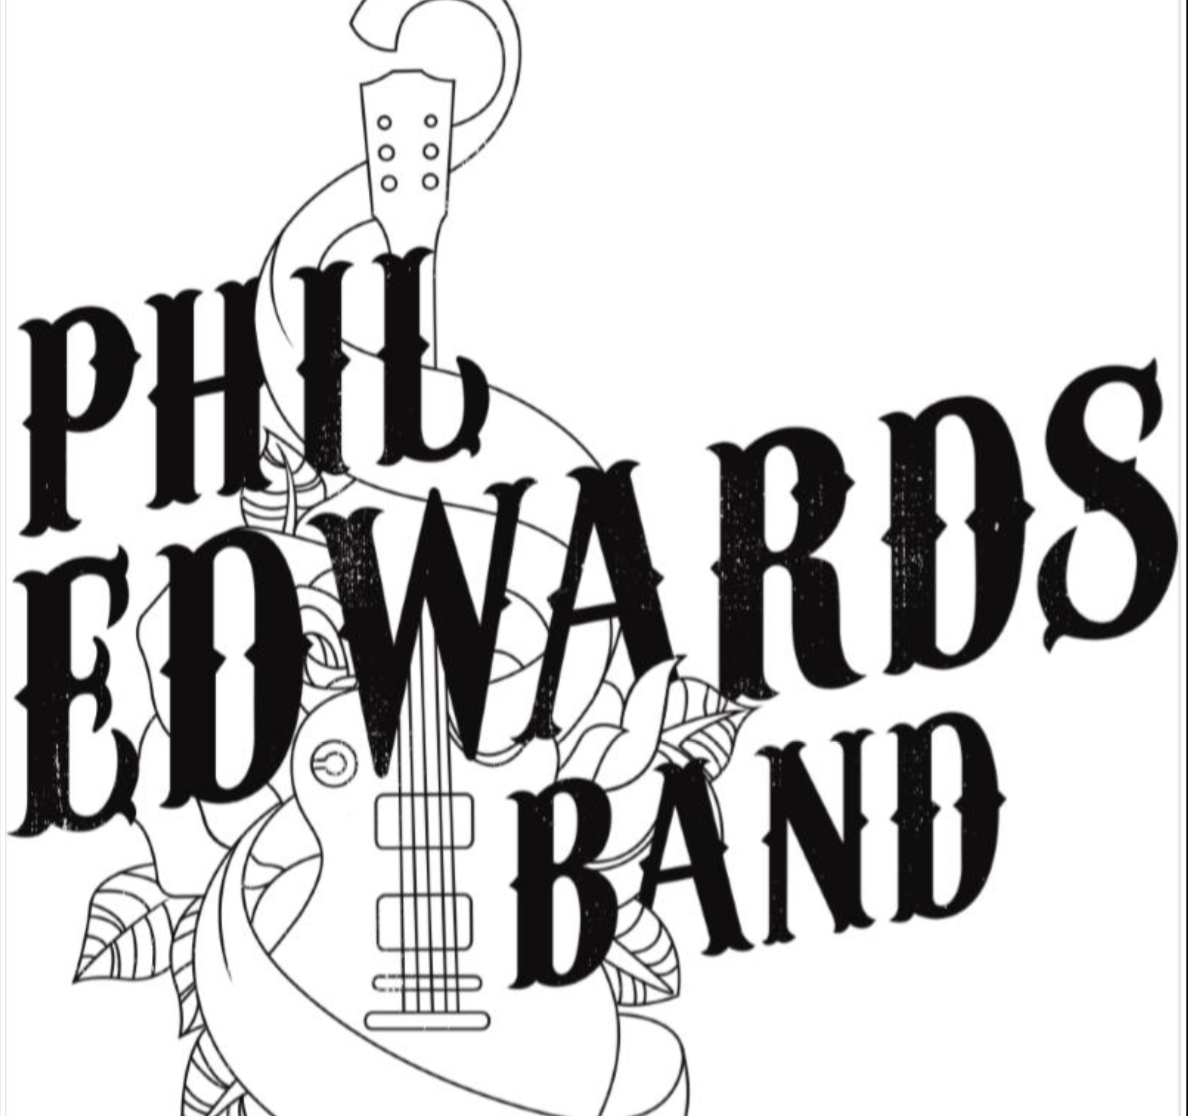 PHIL EDWARDS BAND – INTRODUCING